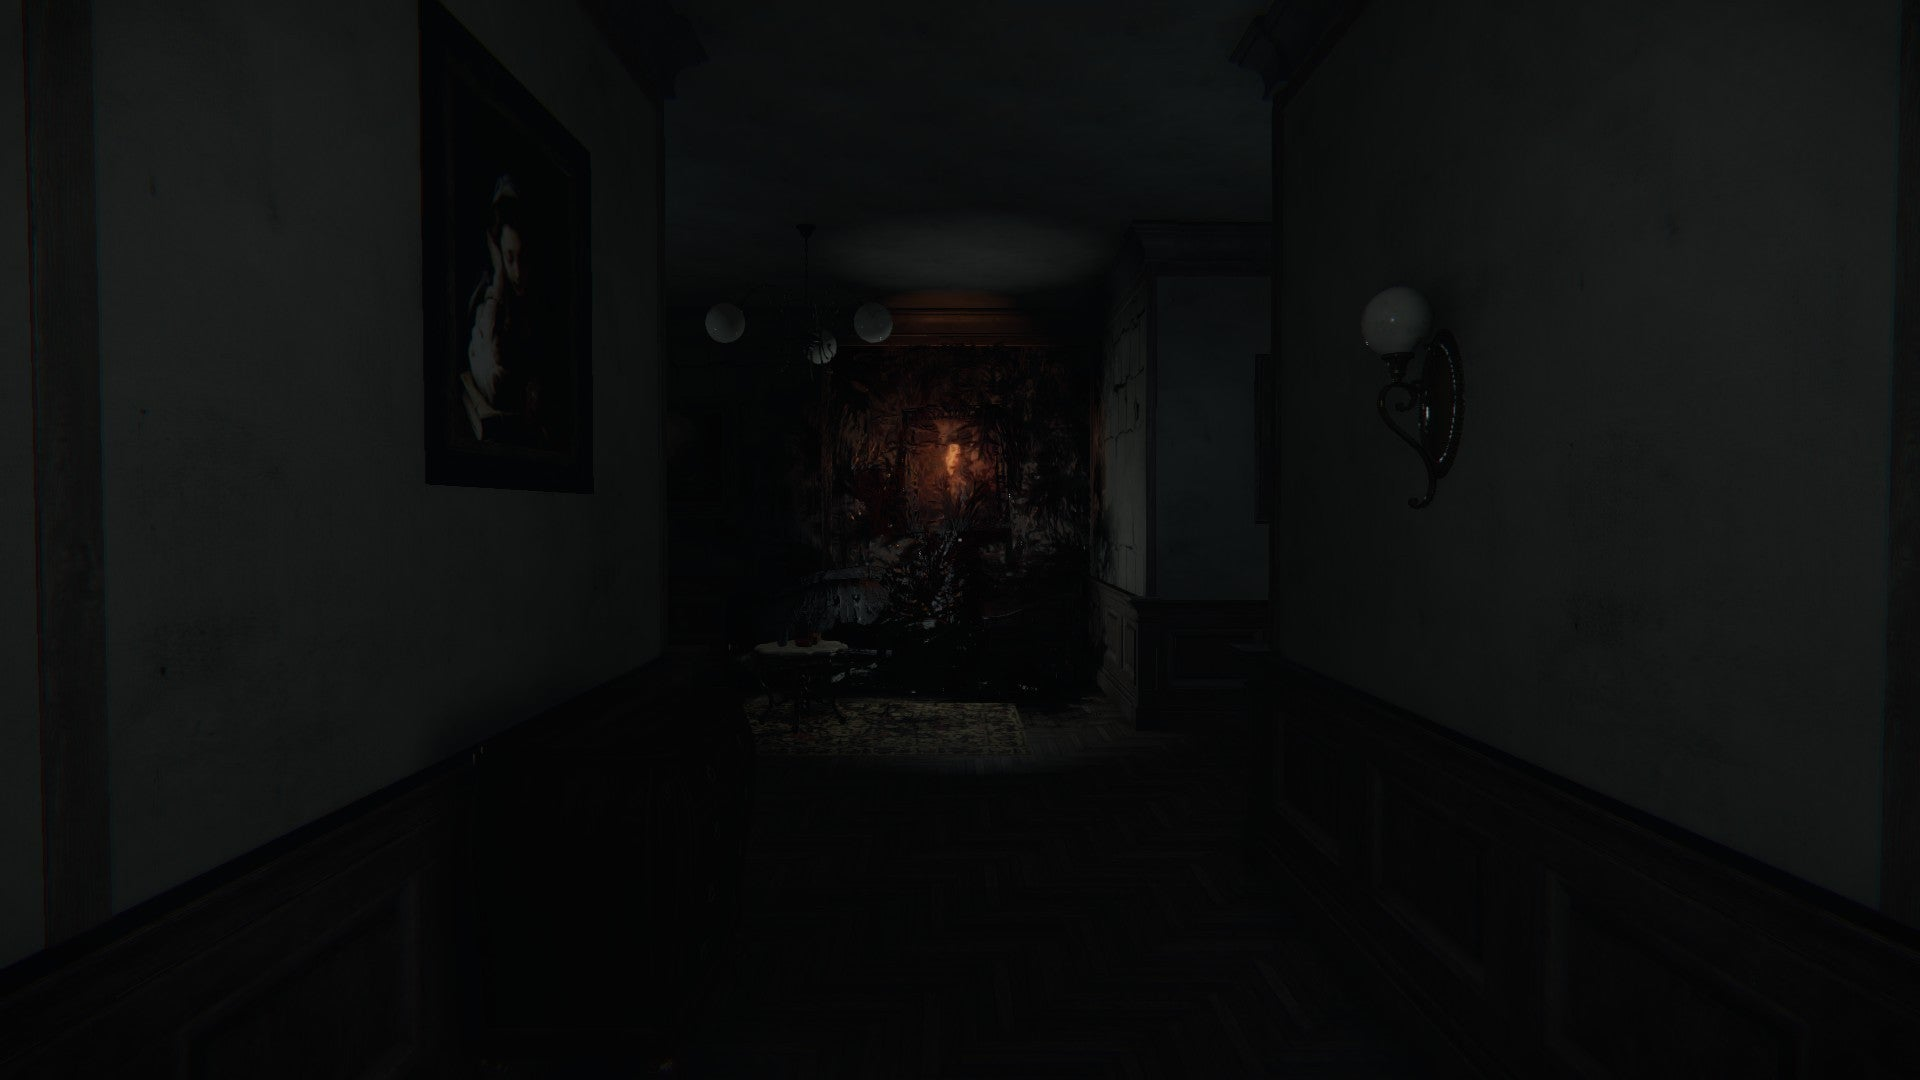 Layers of fear review an unsettling subversion of expectations pcworld - Fear of small space pict ...